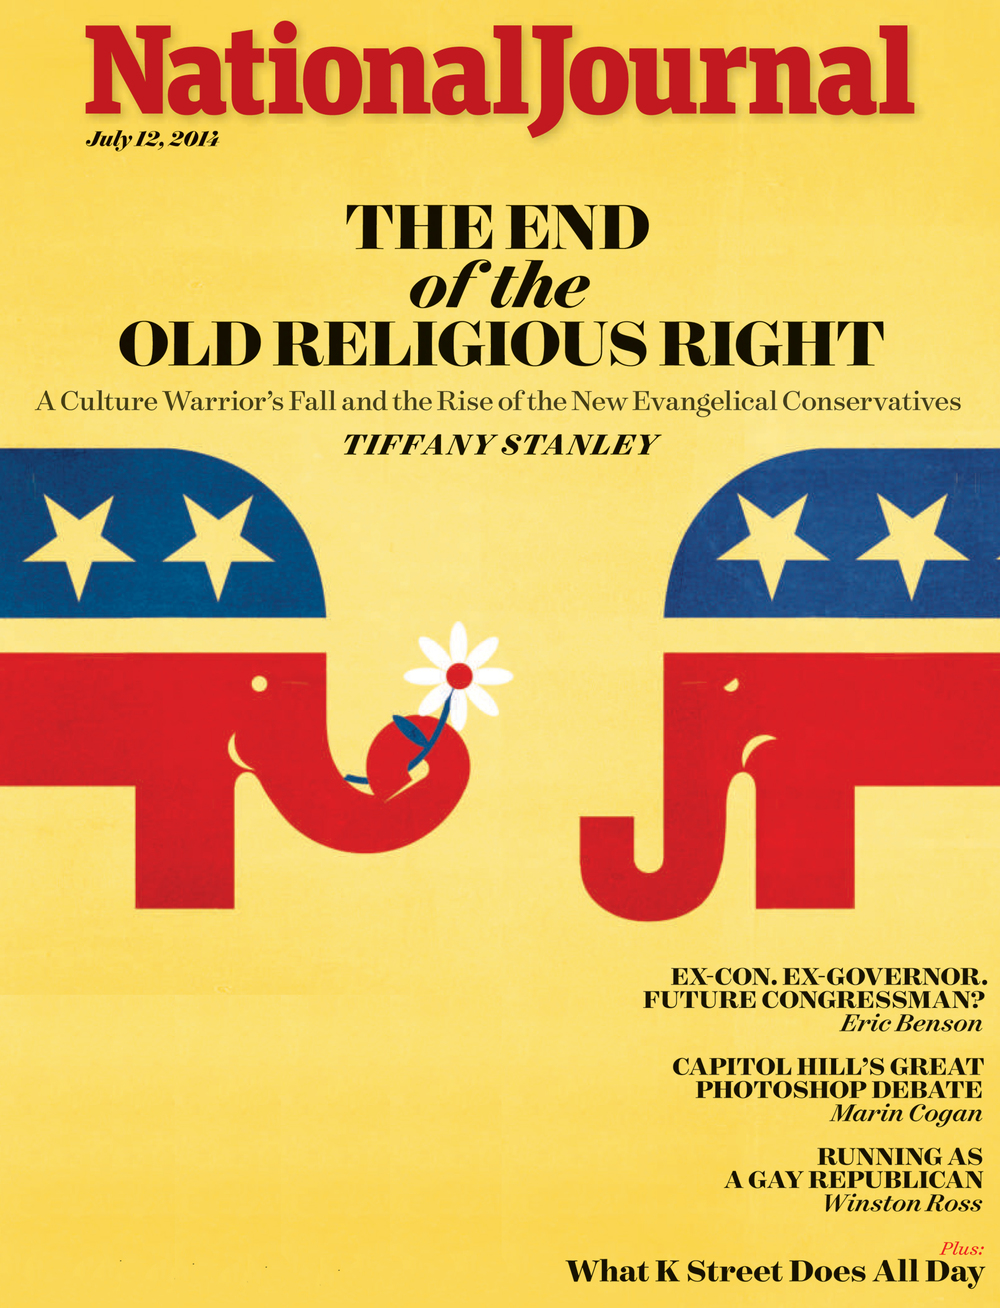 Old Religious Right